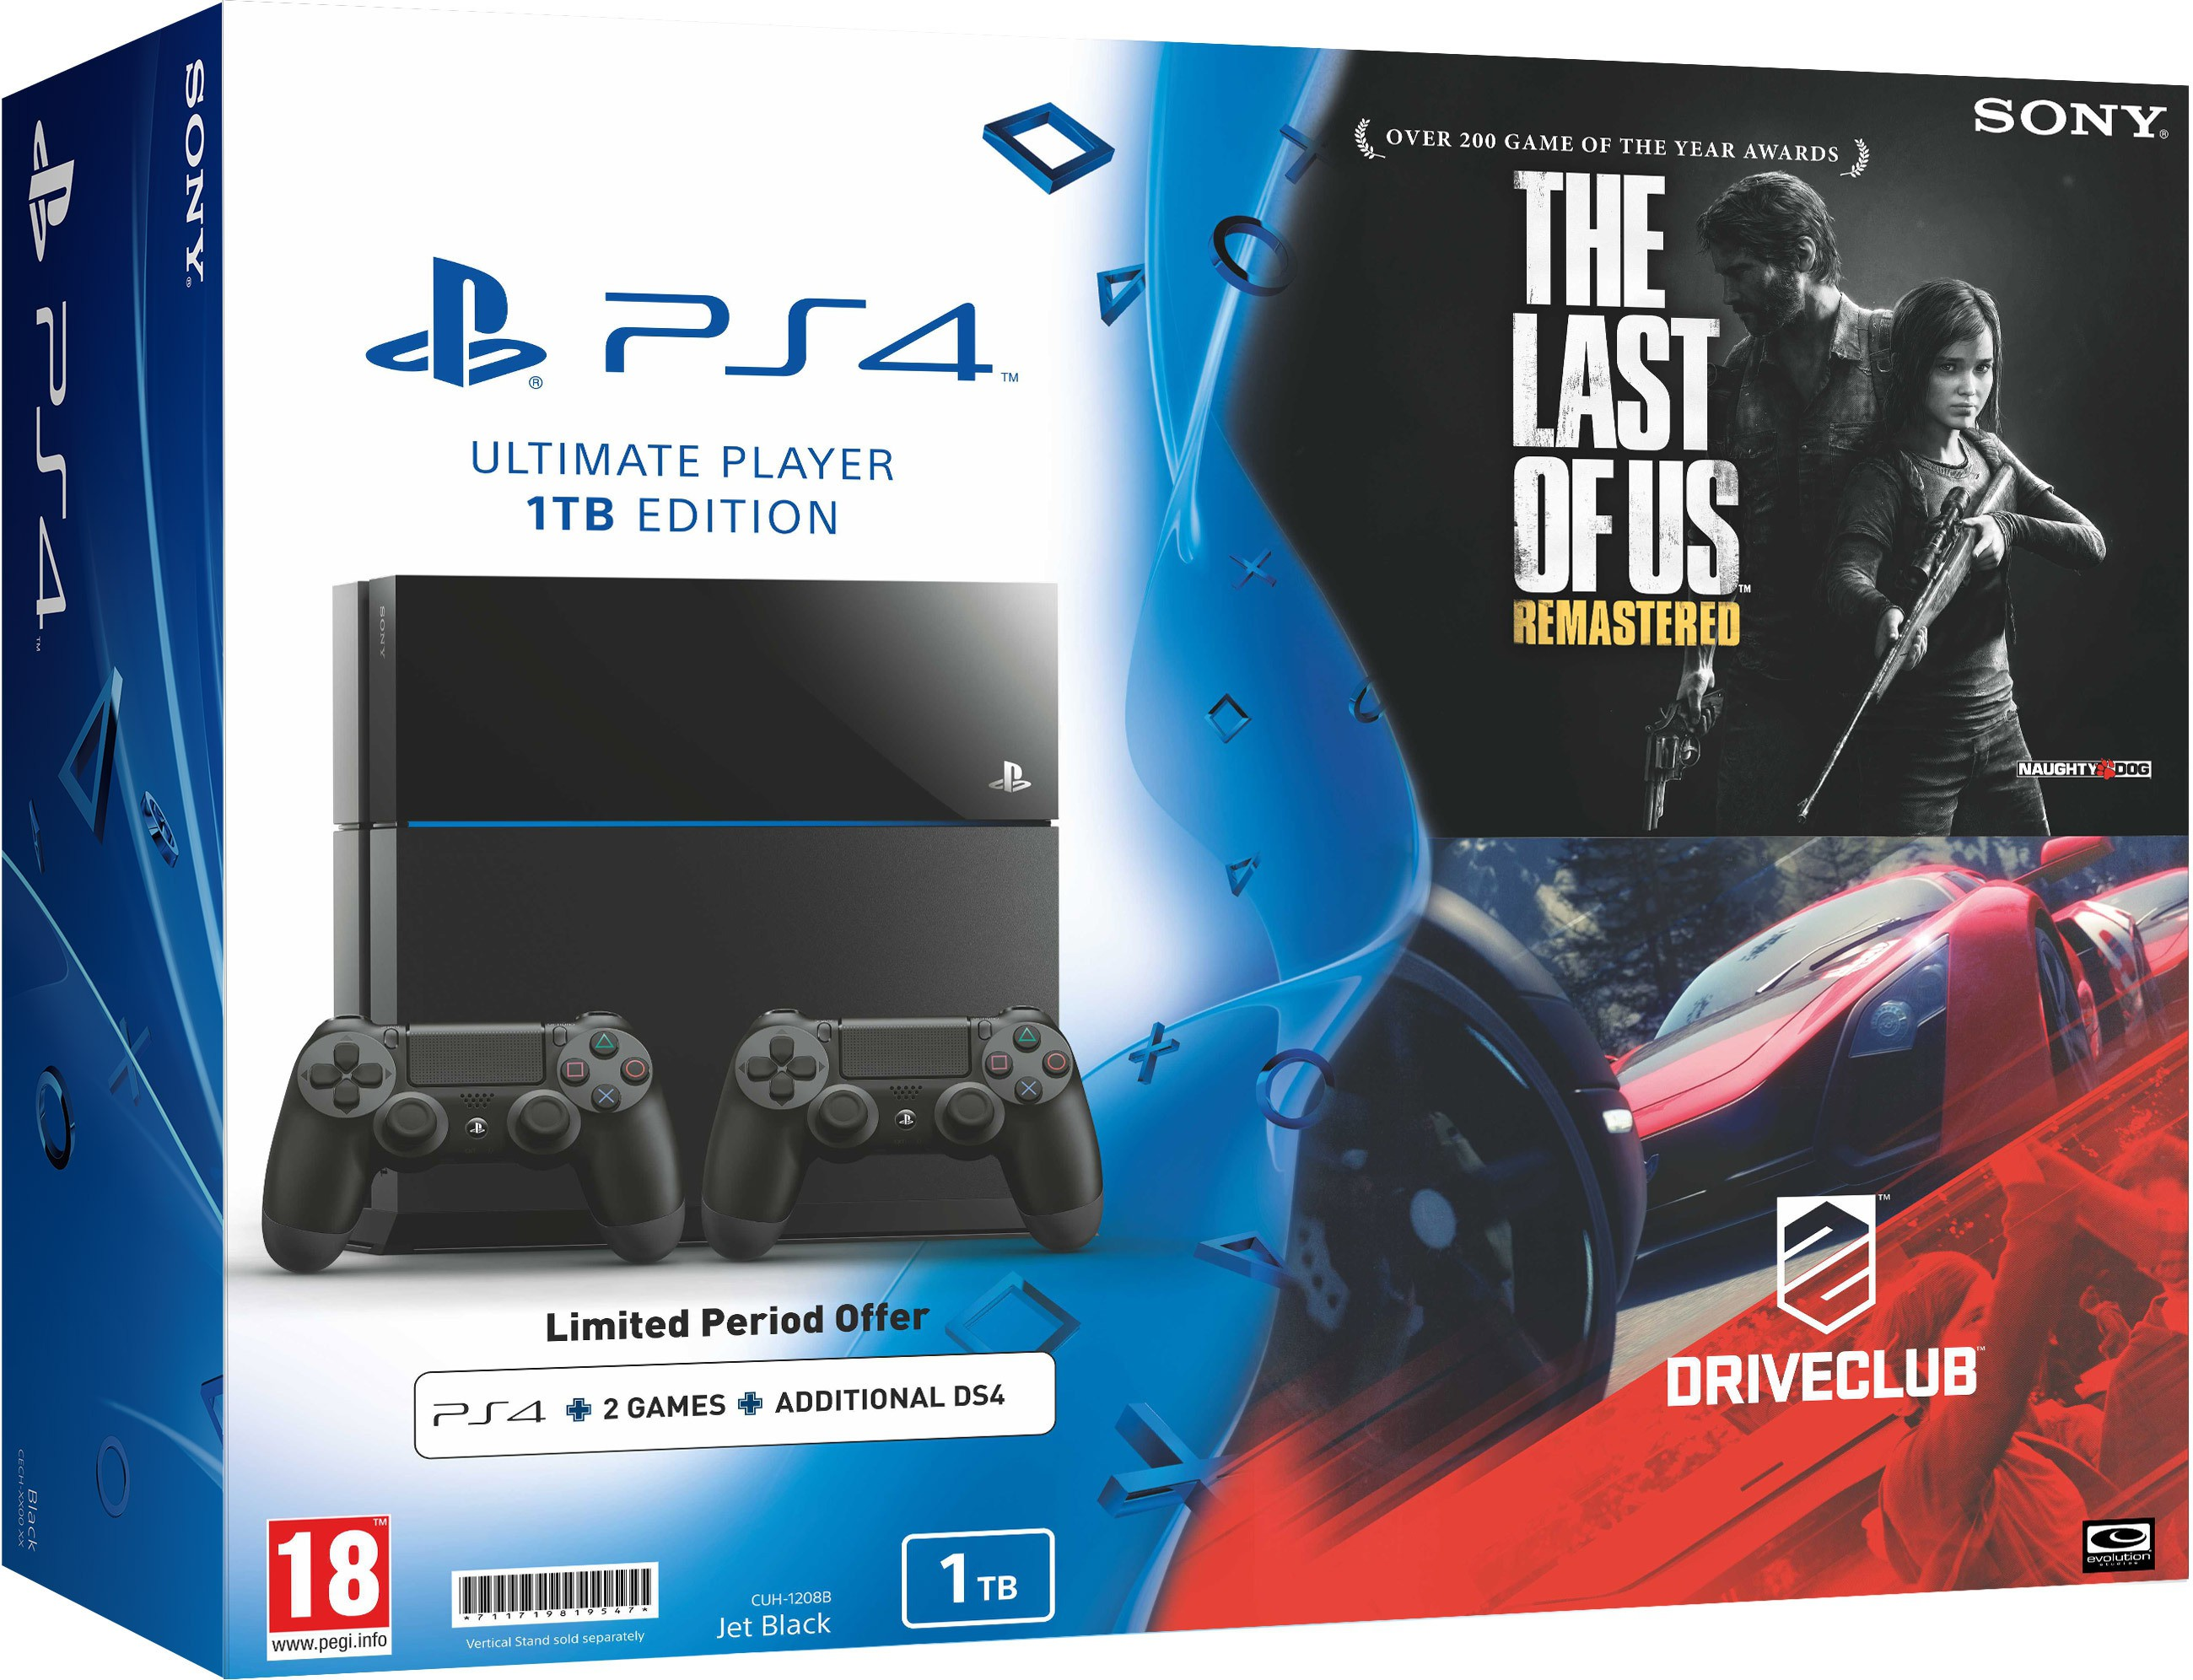 Deals | Extra Rs.4,000 Off Sony PlayStation PS4